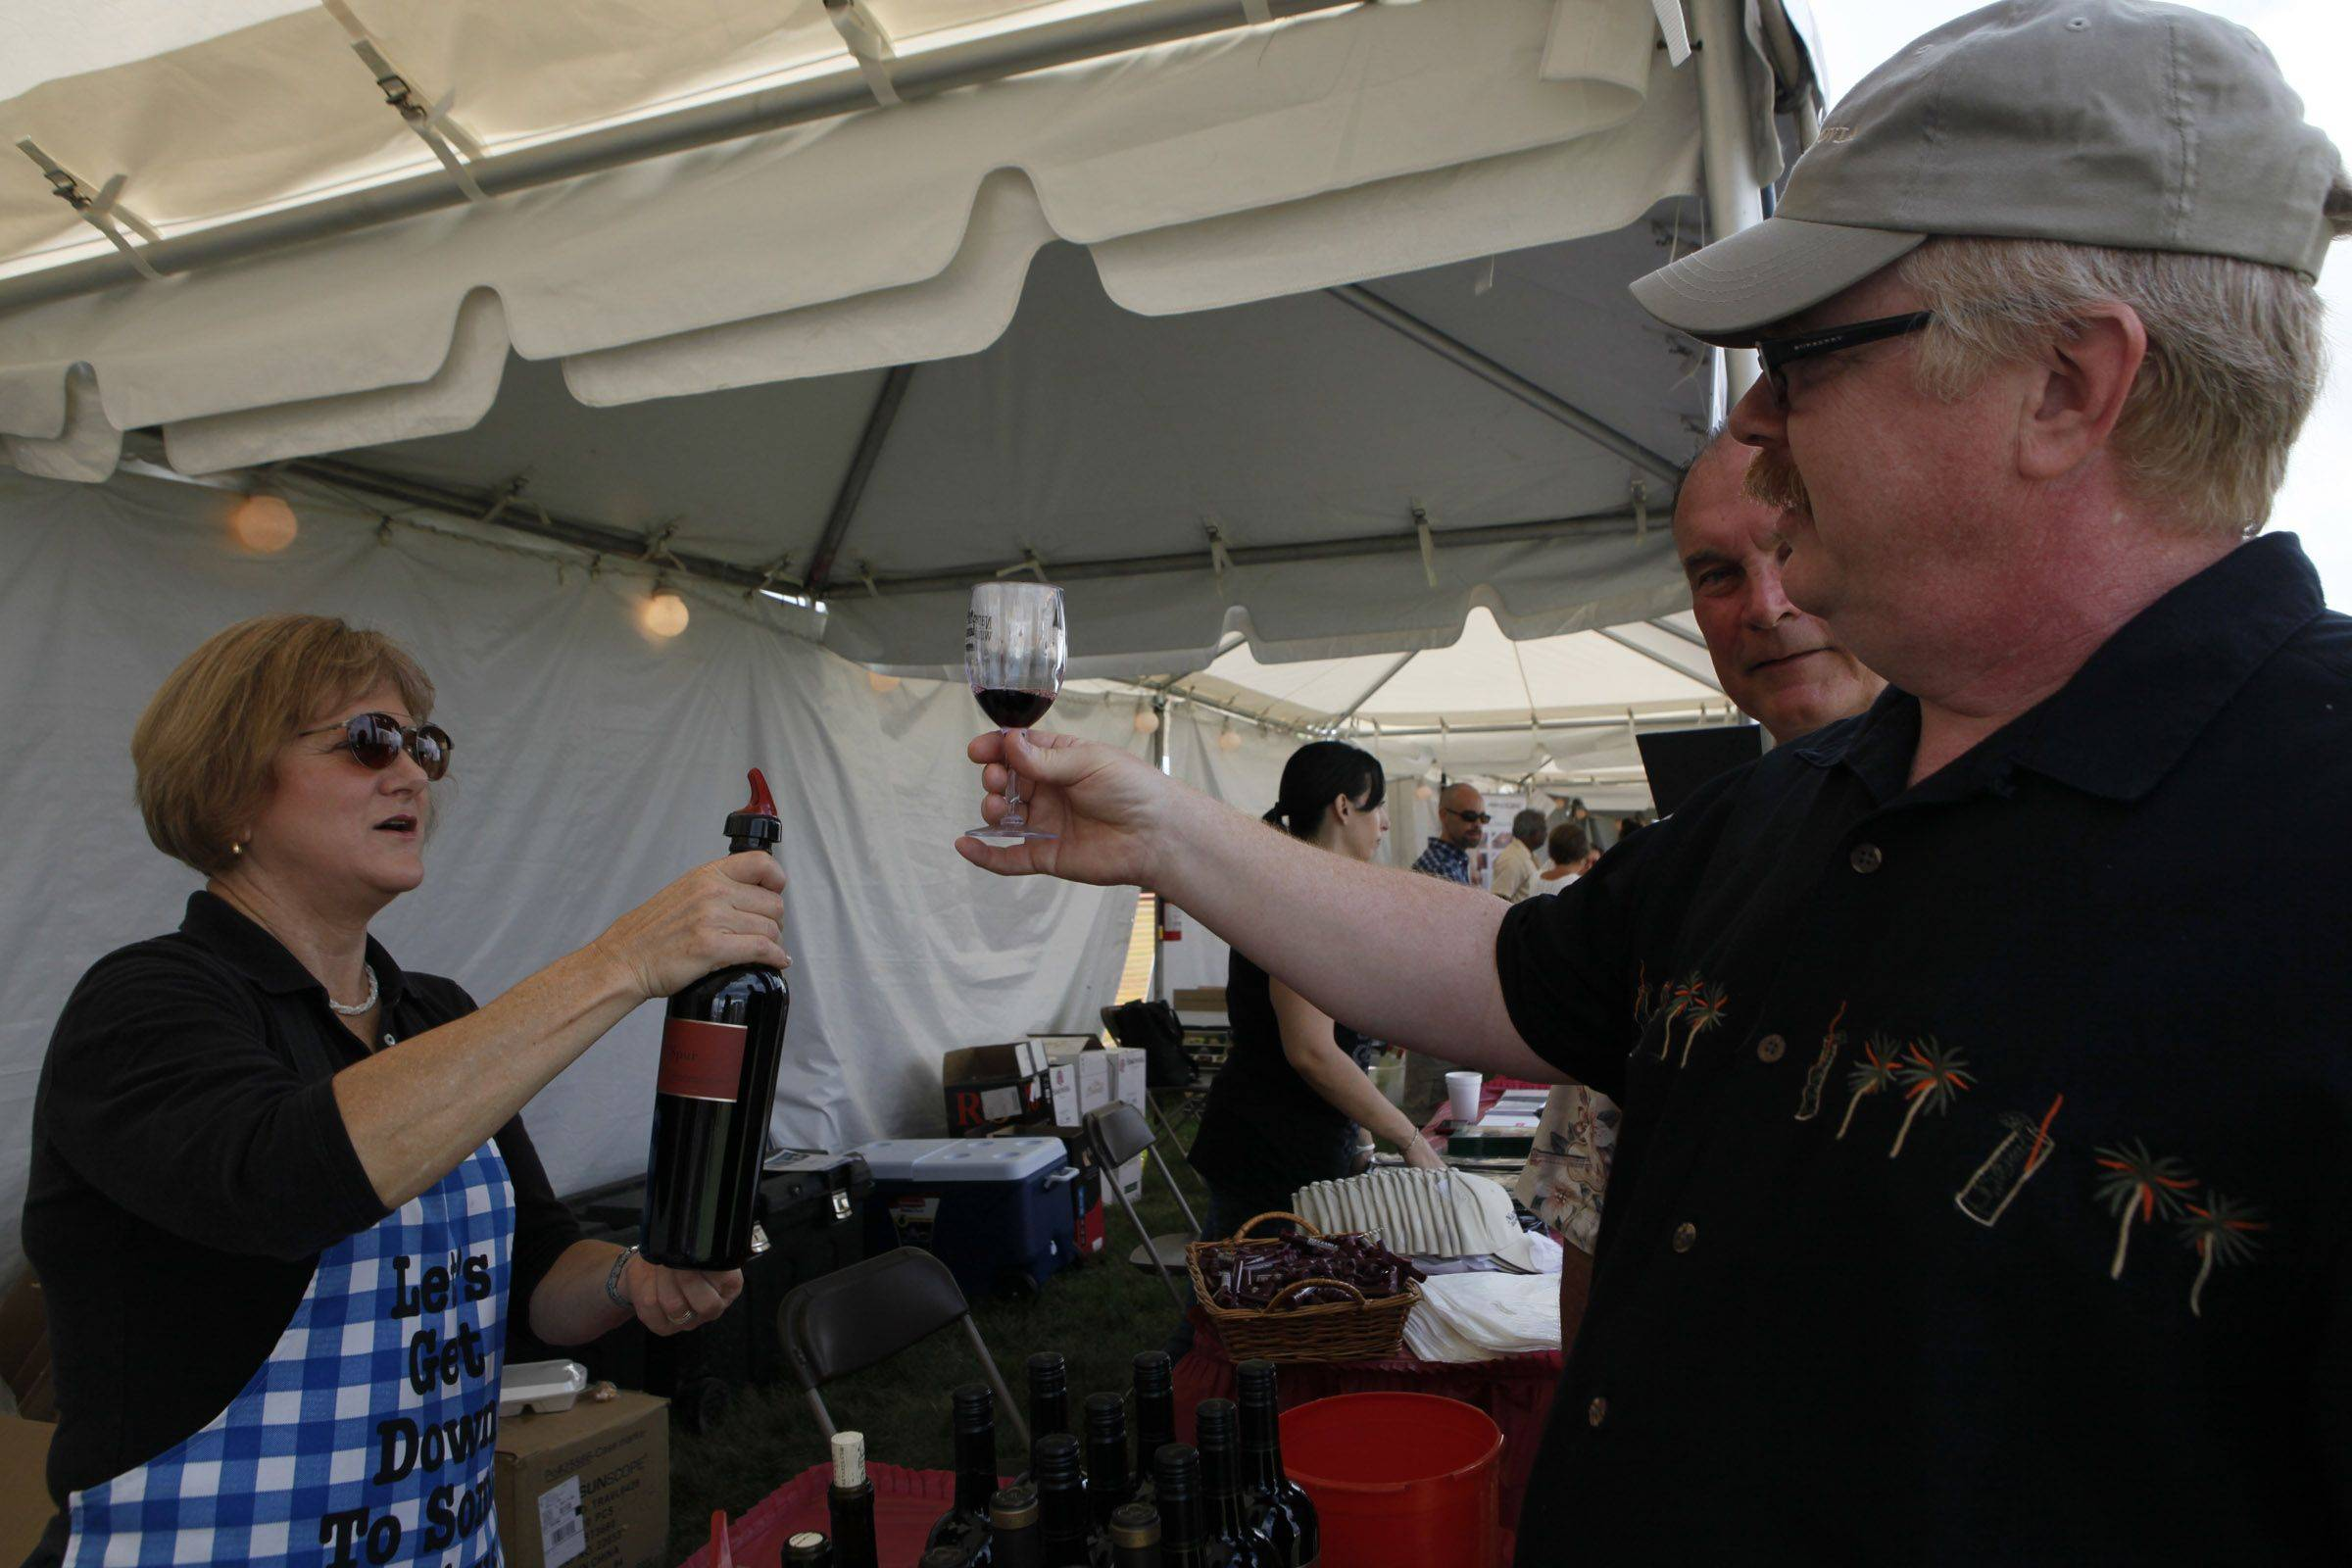 Bob Julian prepares to sample some wine from Lynne, who represents the Wente Estate, the oldest family-owned winery in North America, on Saturday at the Naperville Wine Festival at CityGate Centre.